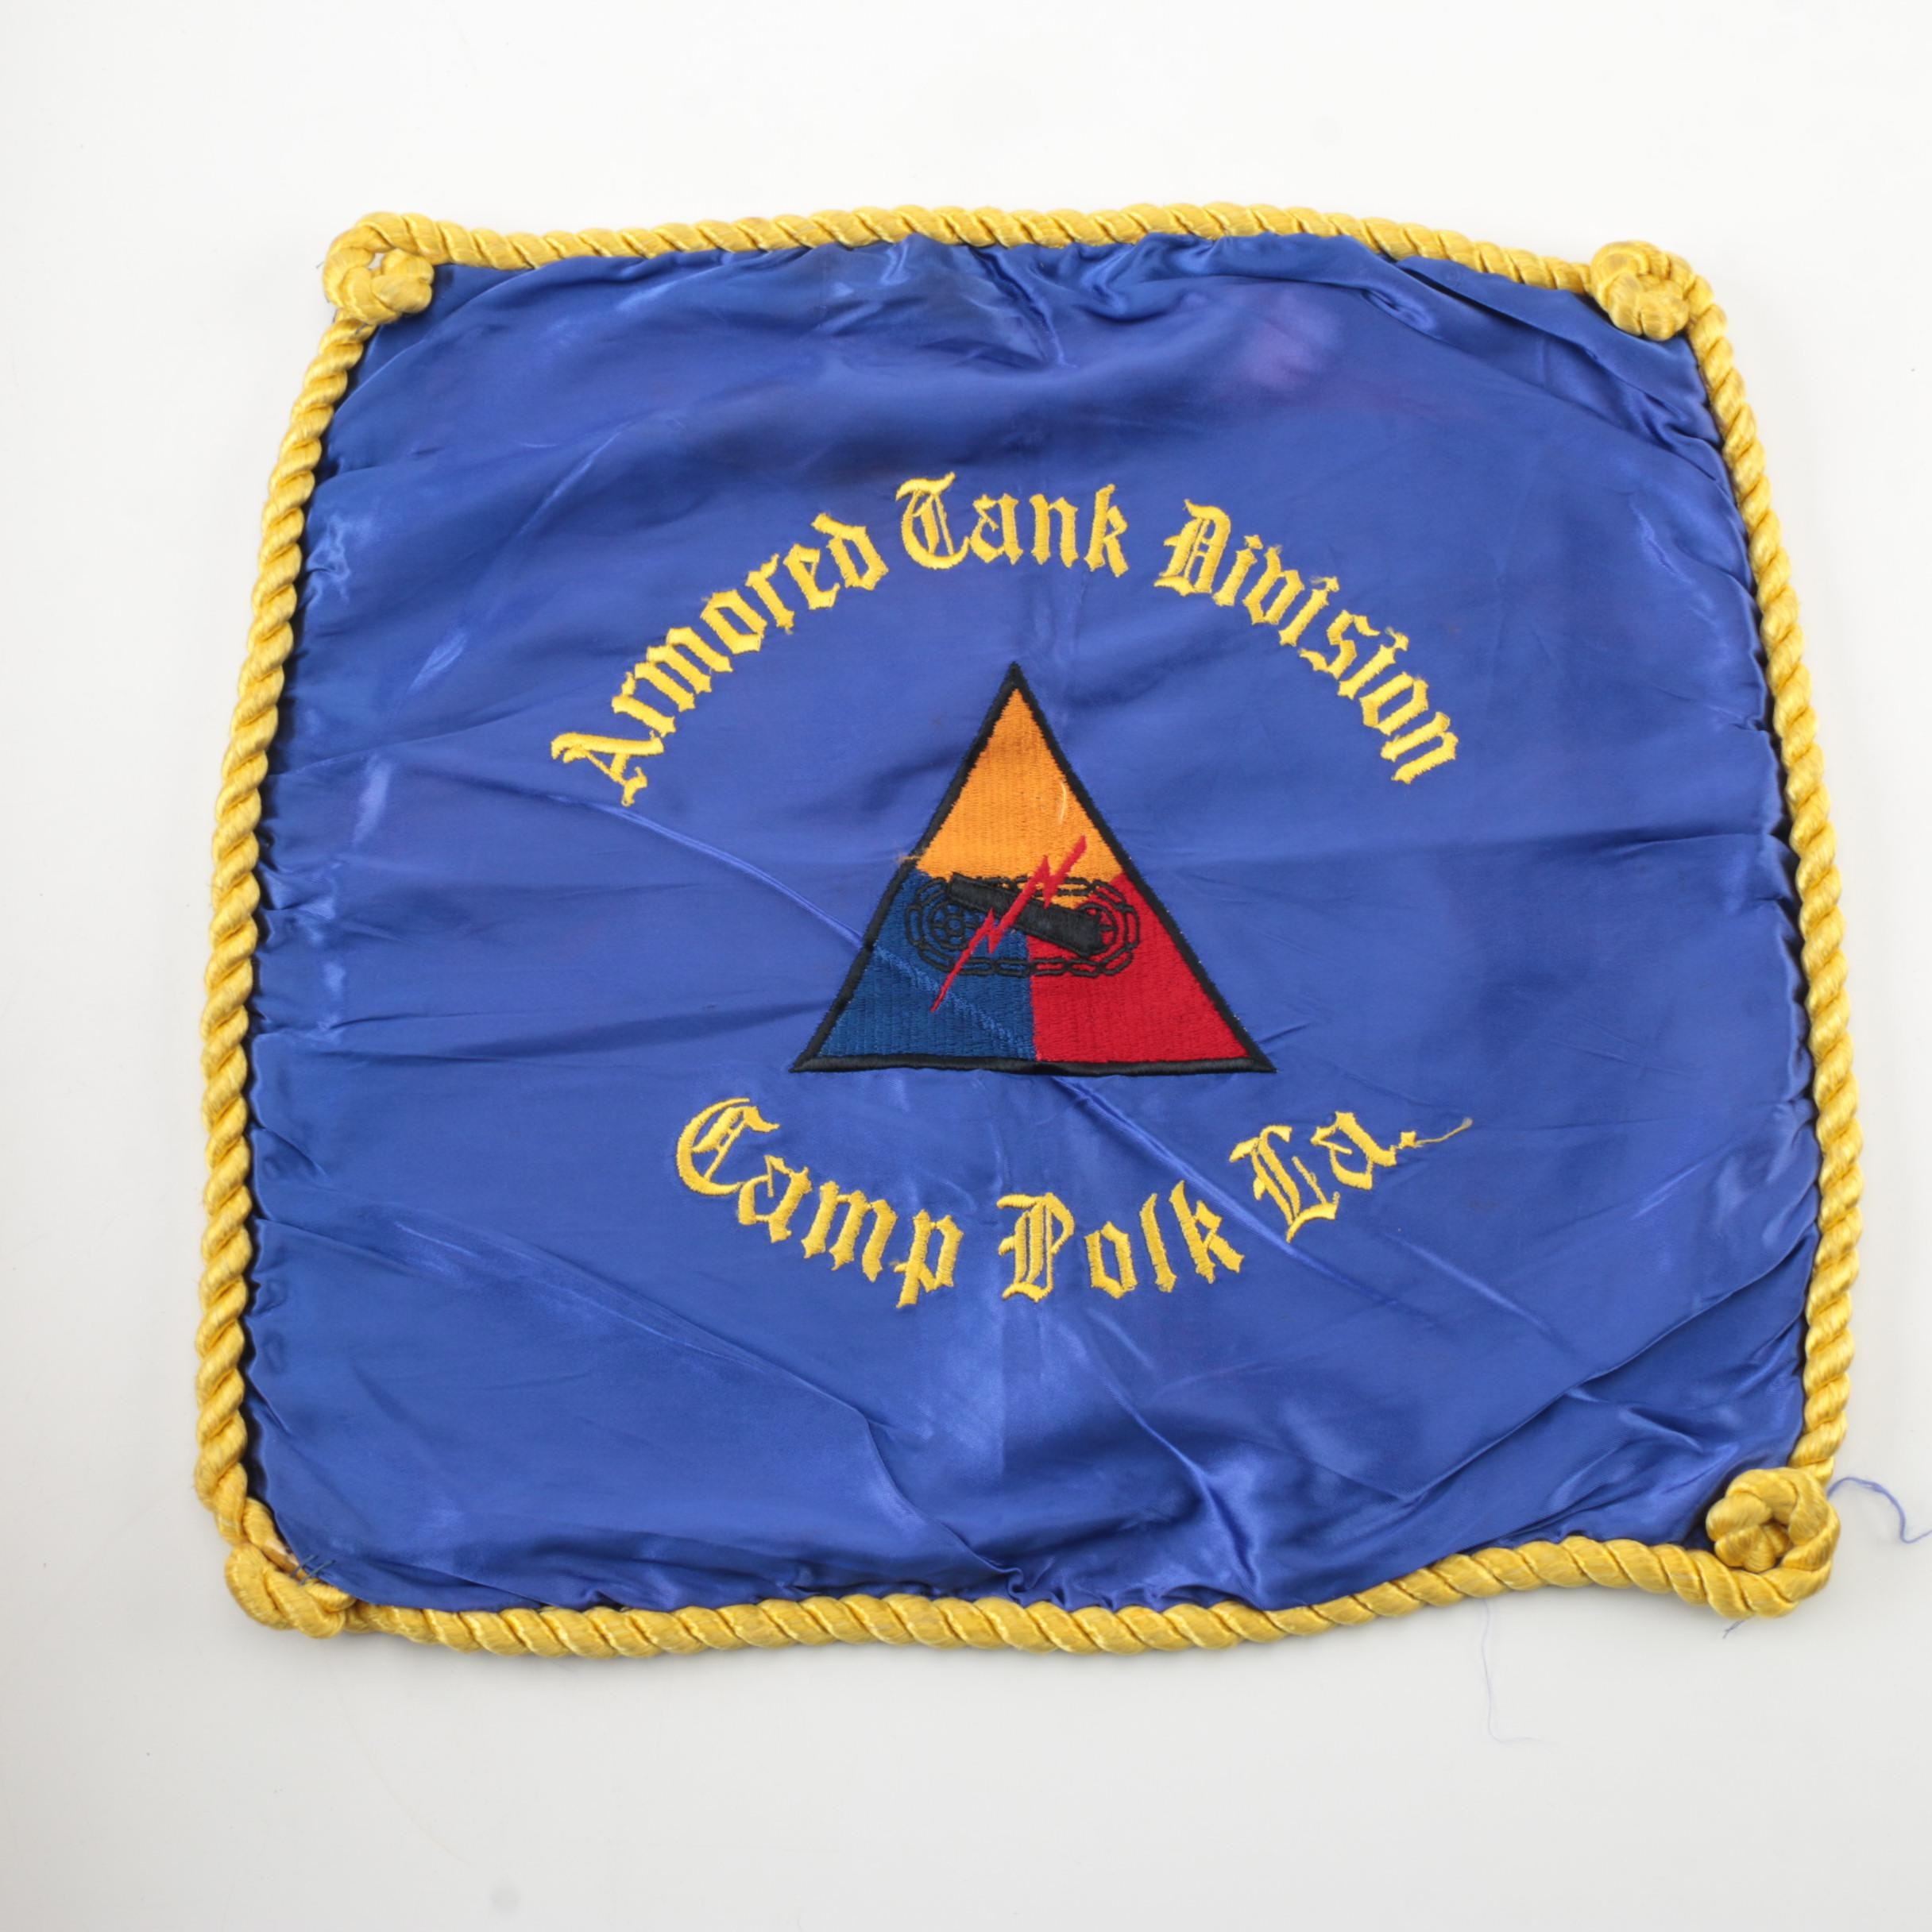 Armored Tank Division  Camp Polk, La. Pillow Cover